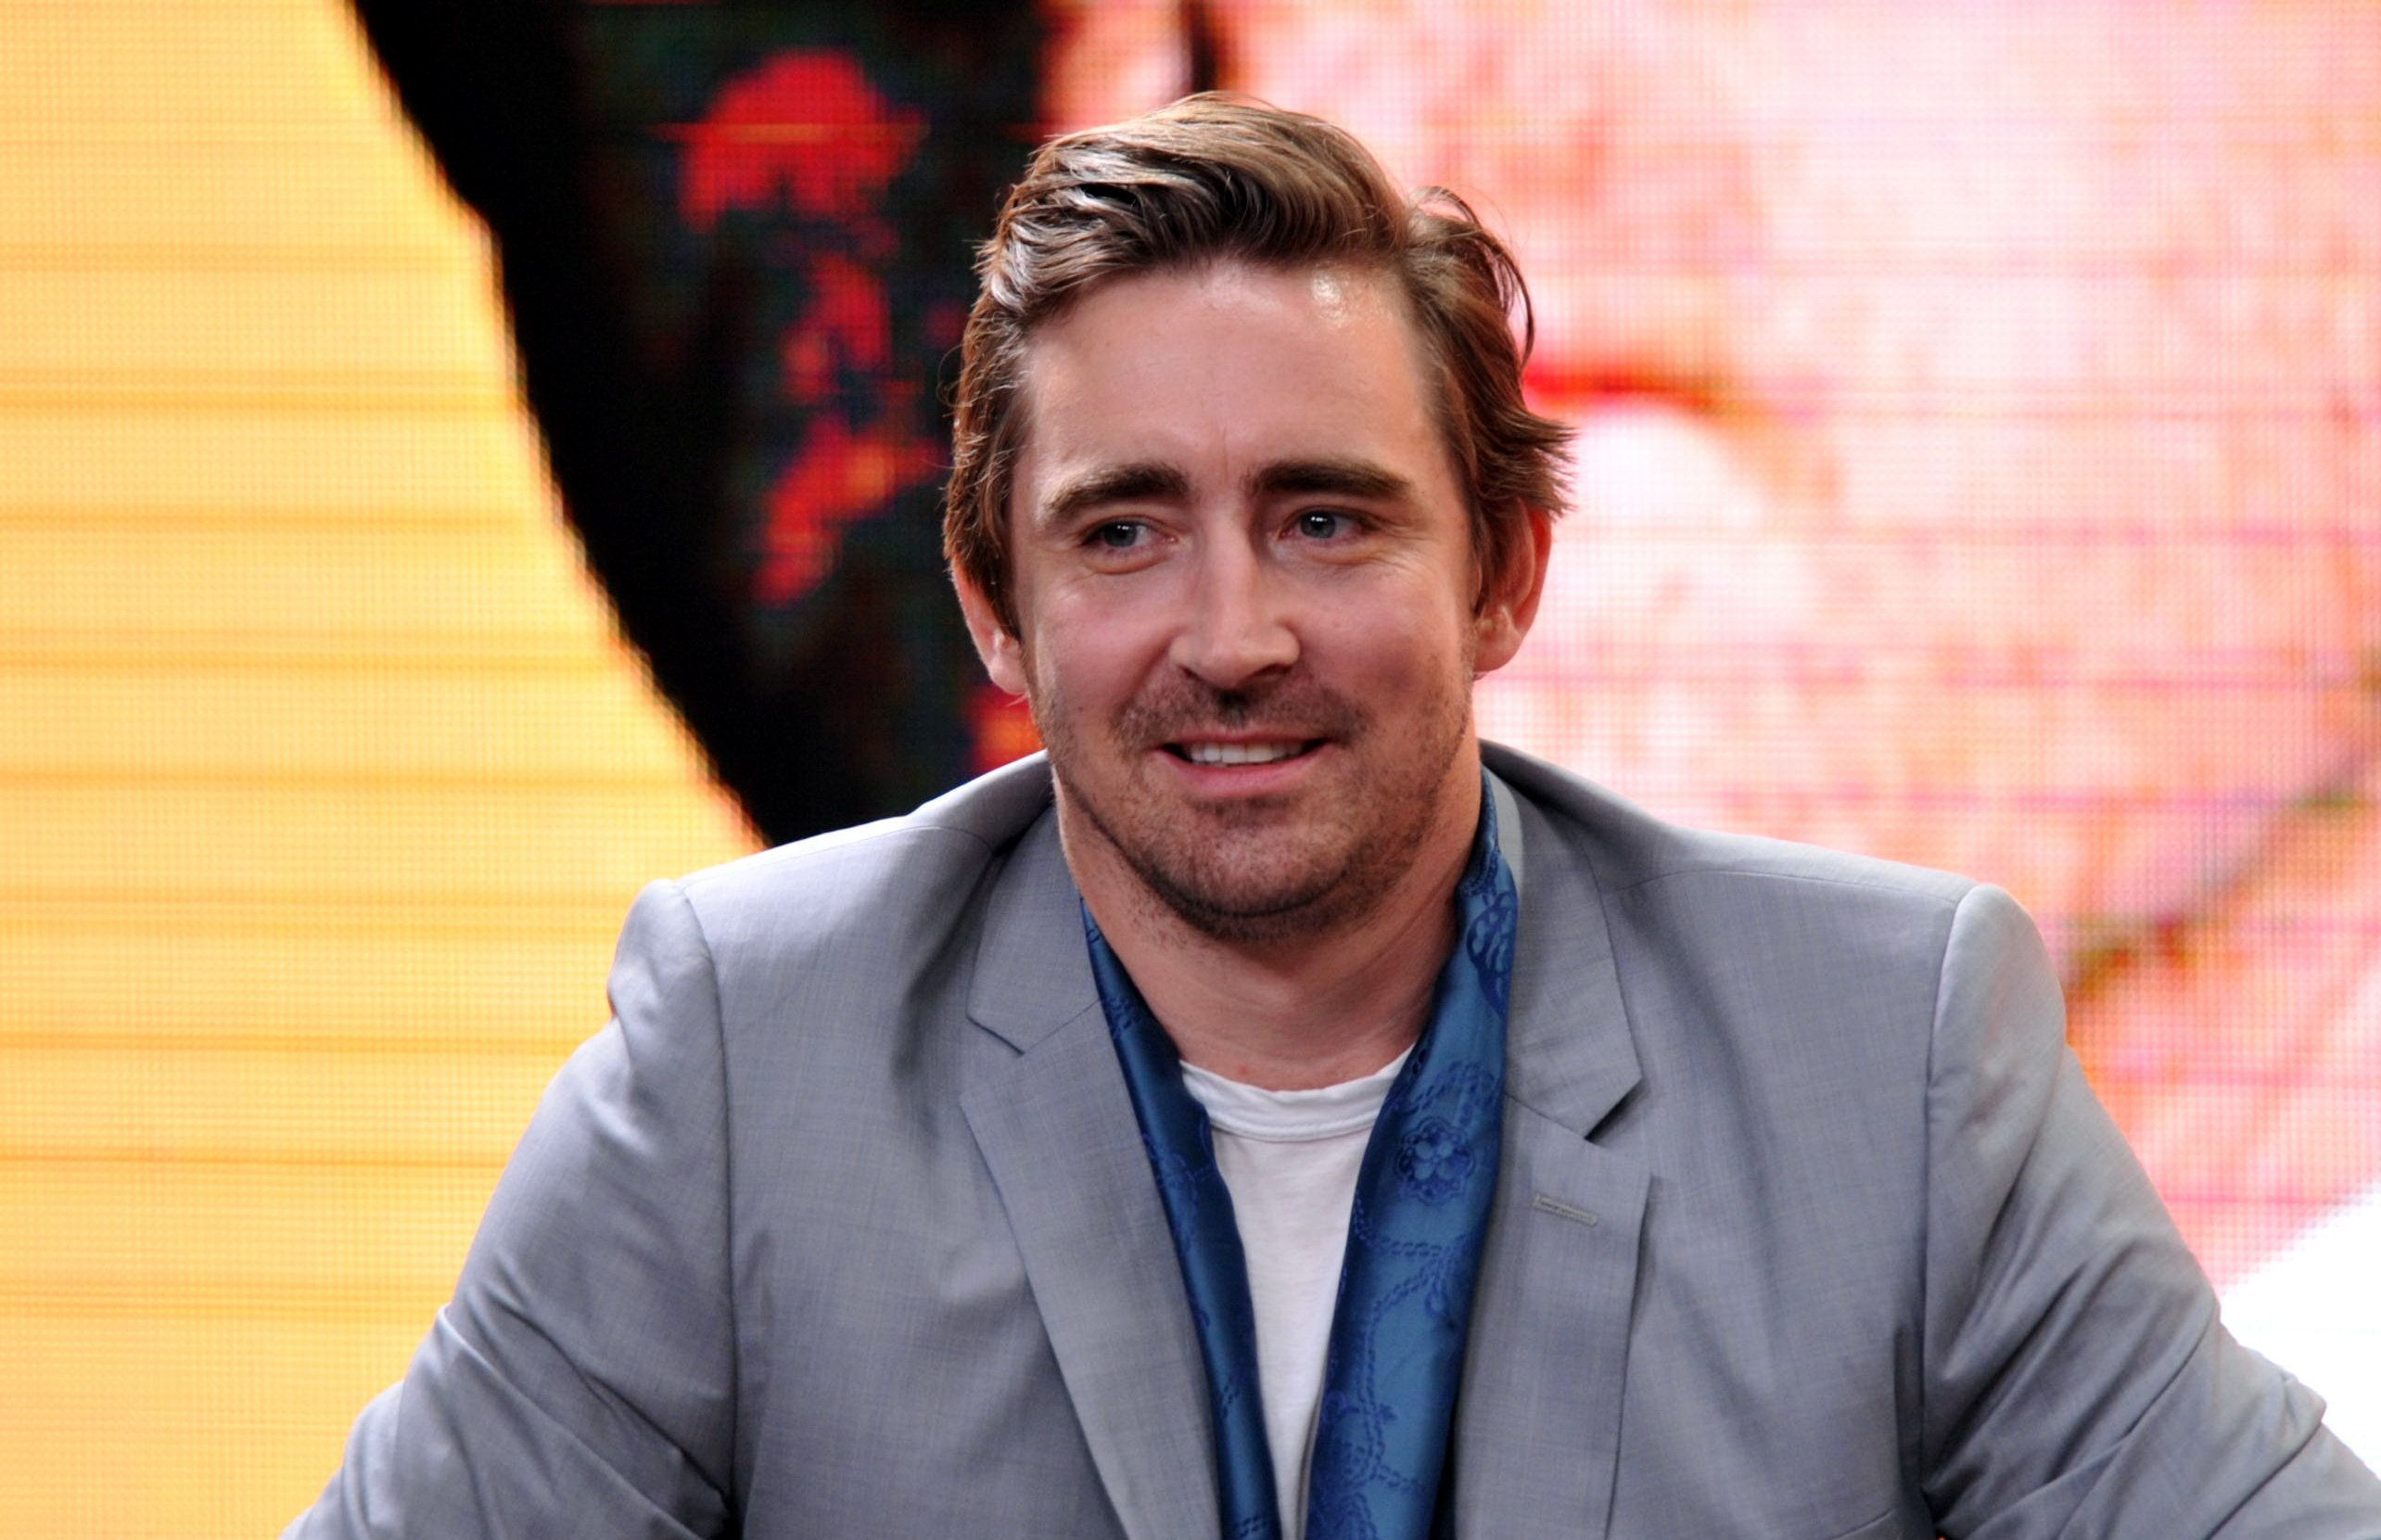 Lee Pace has been known to keep tight-lipped about his private life.